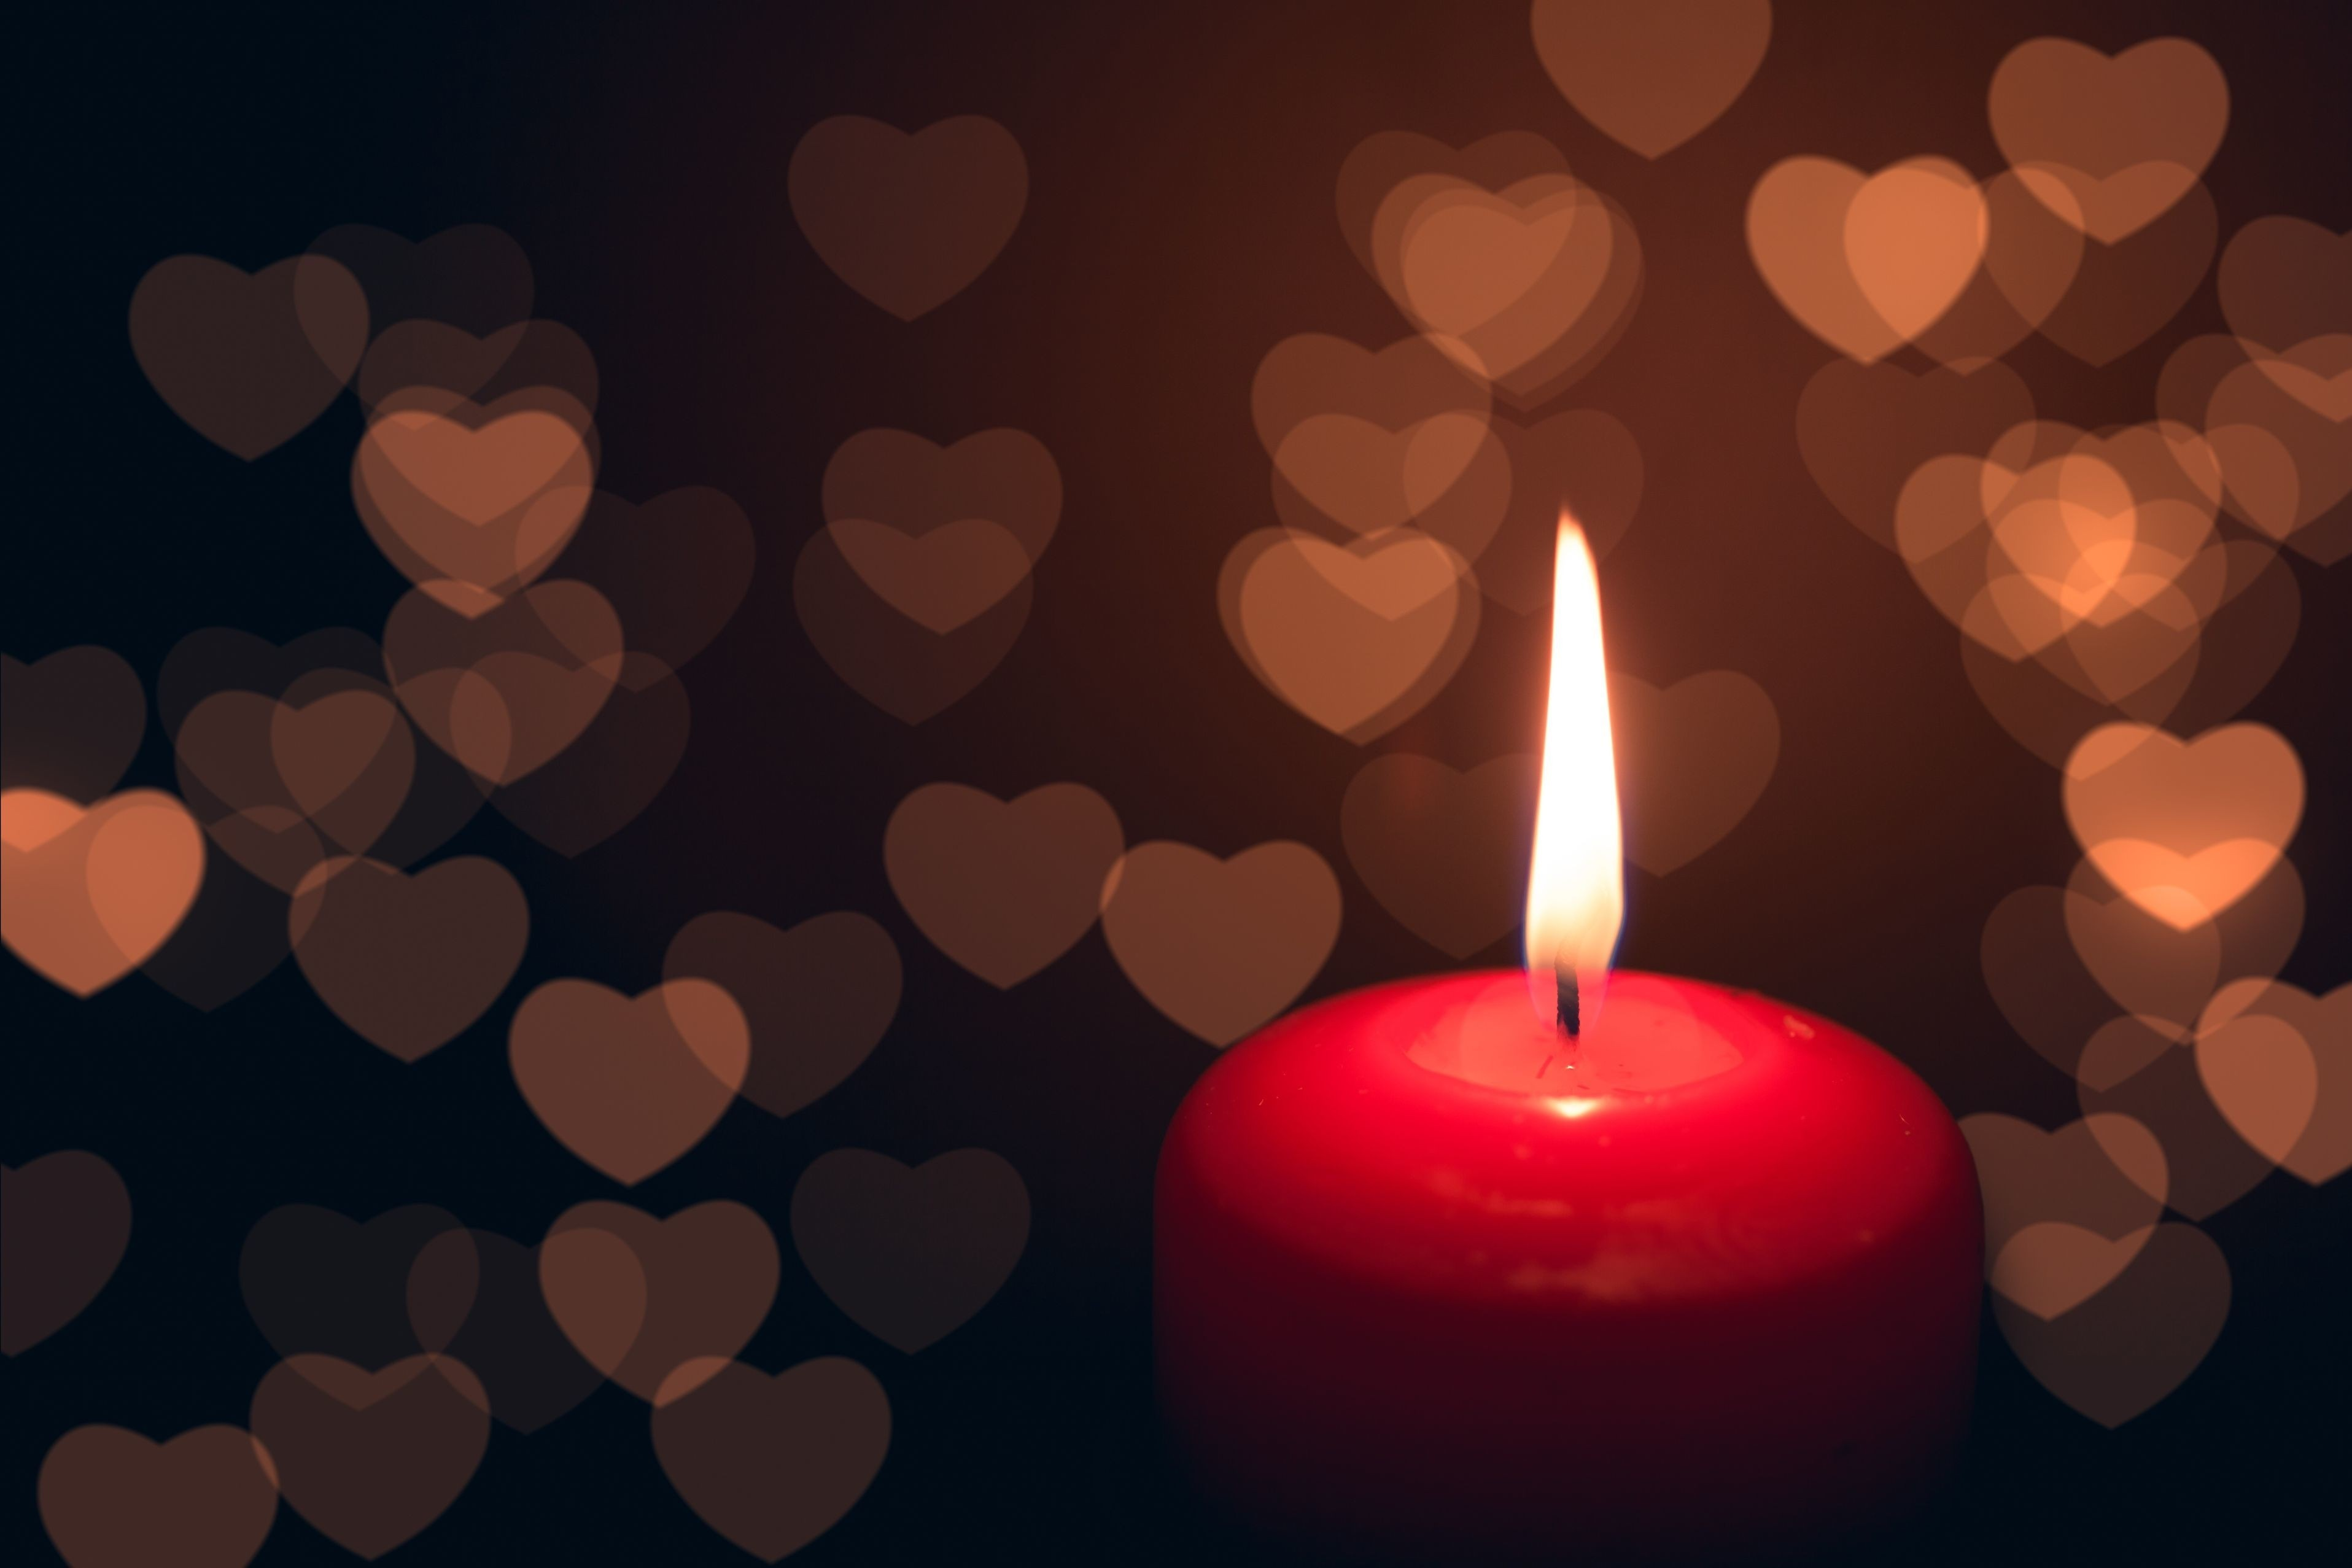 83662 free wallpaper 1080x2400 for phone, download images Hearts, Love, Dark, Candle 1080x2400 for mobile